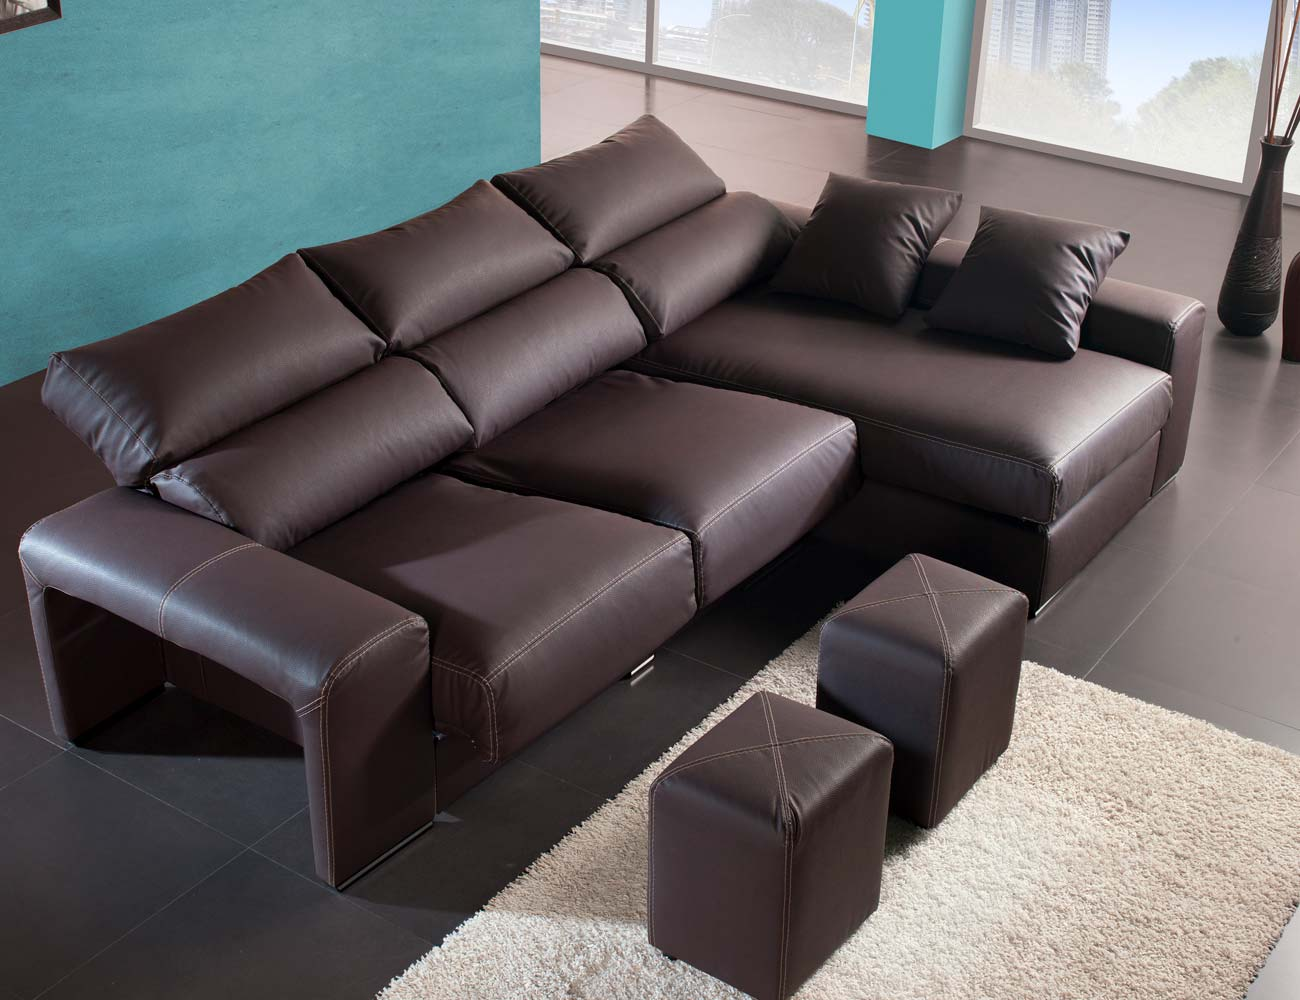 Sofa chaiselongue moderno polipiel chocolate poufs taburetes32